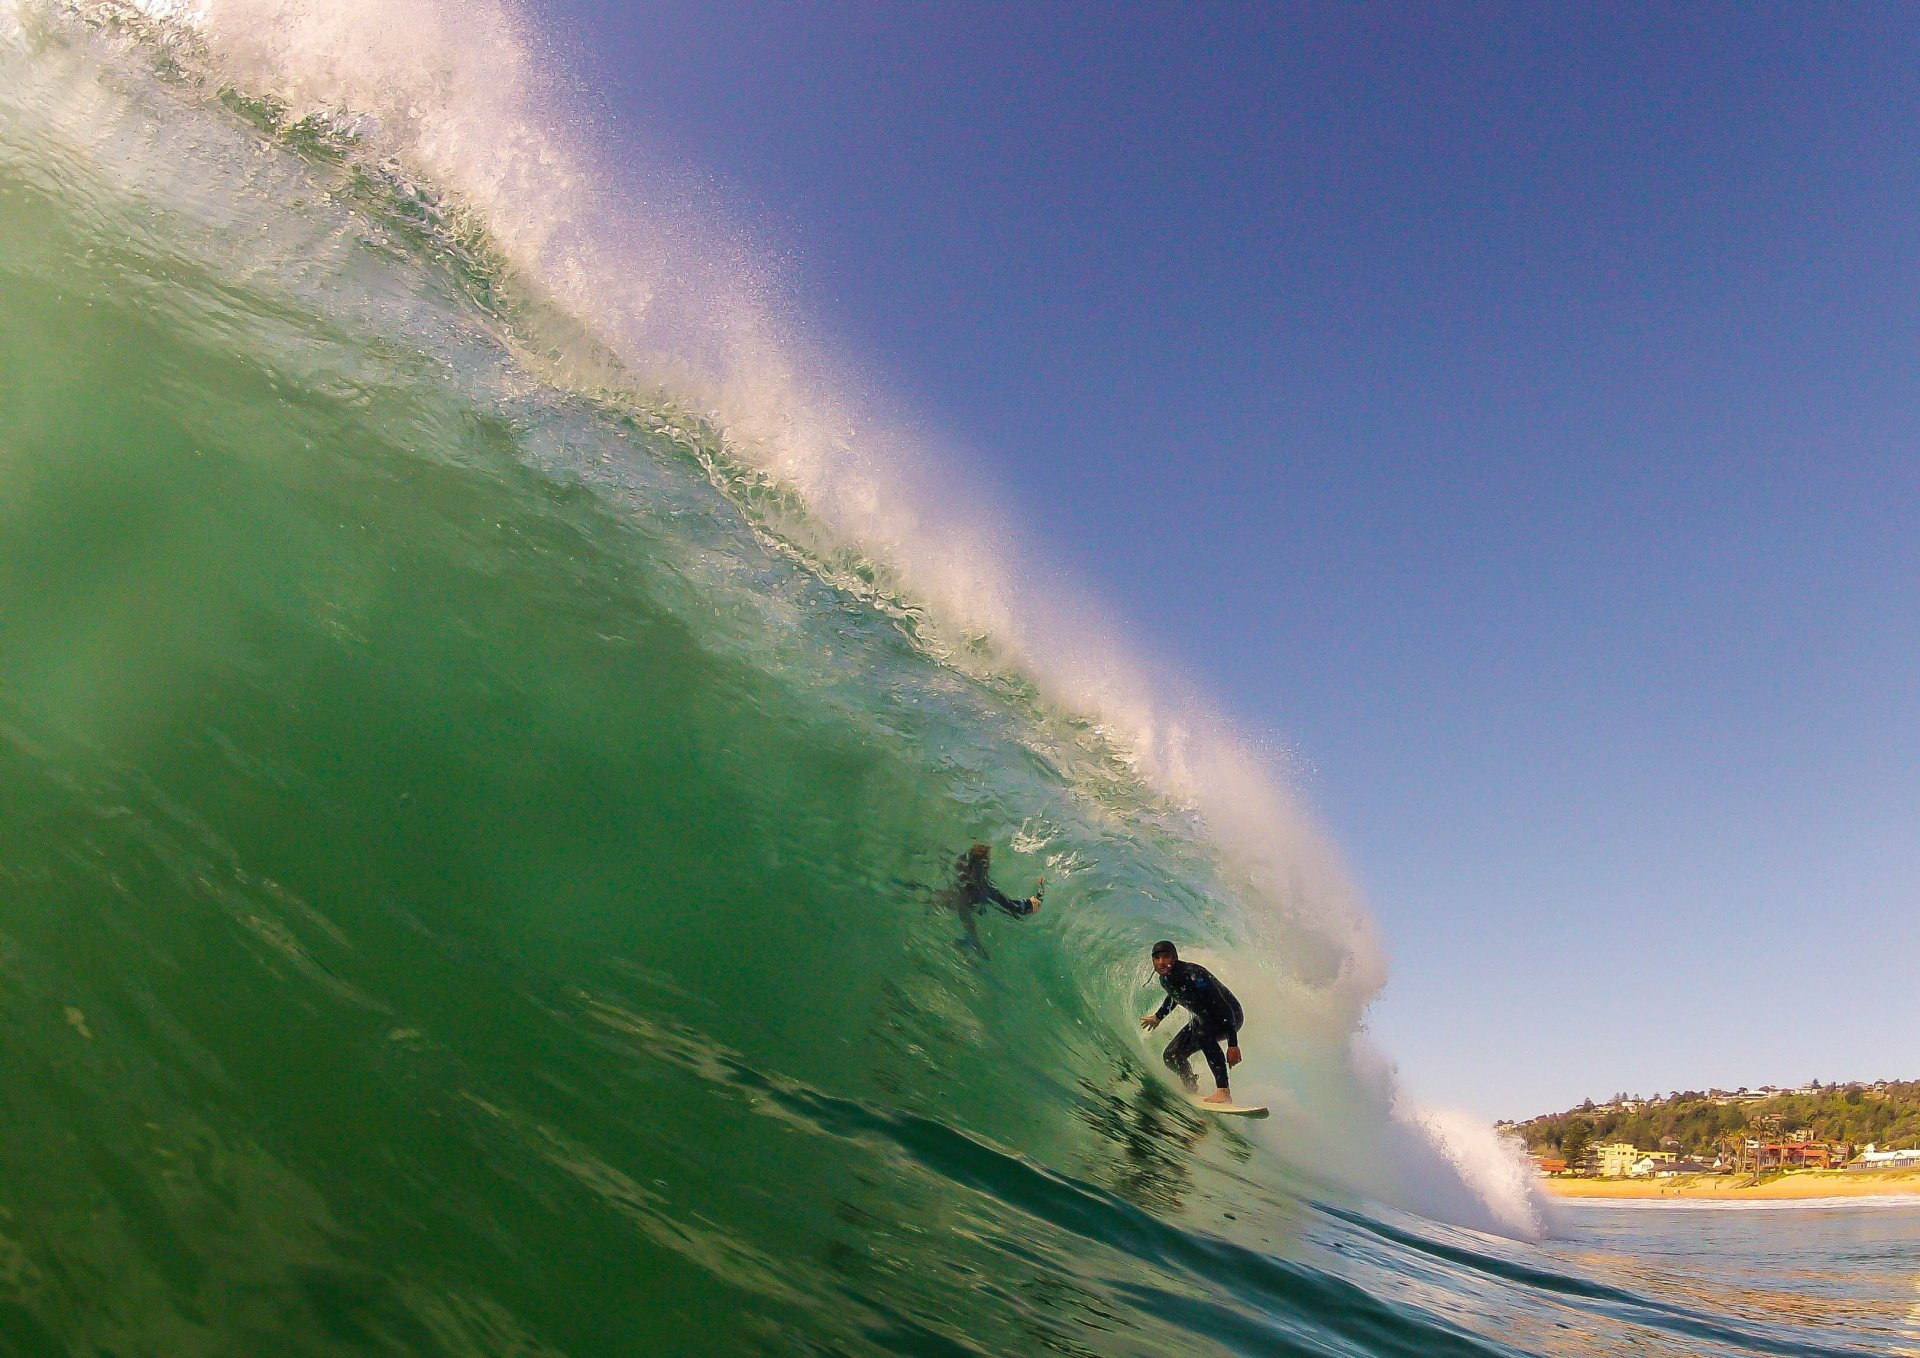 chris zinon's photo of South Narrabeen